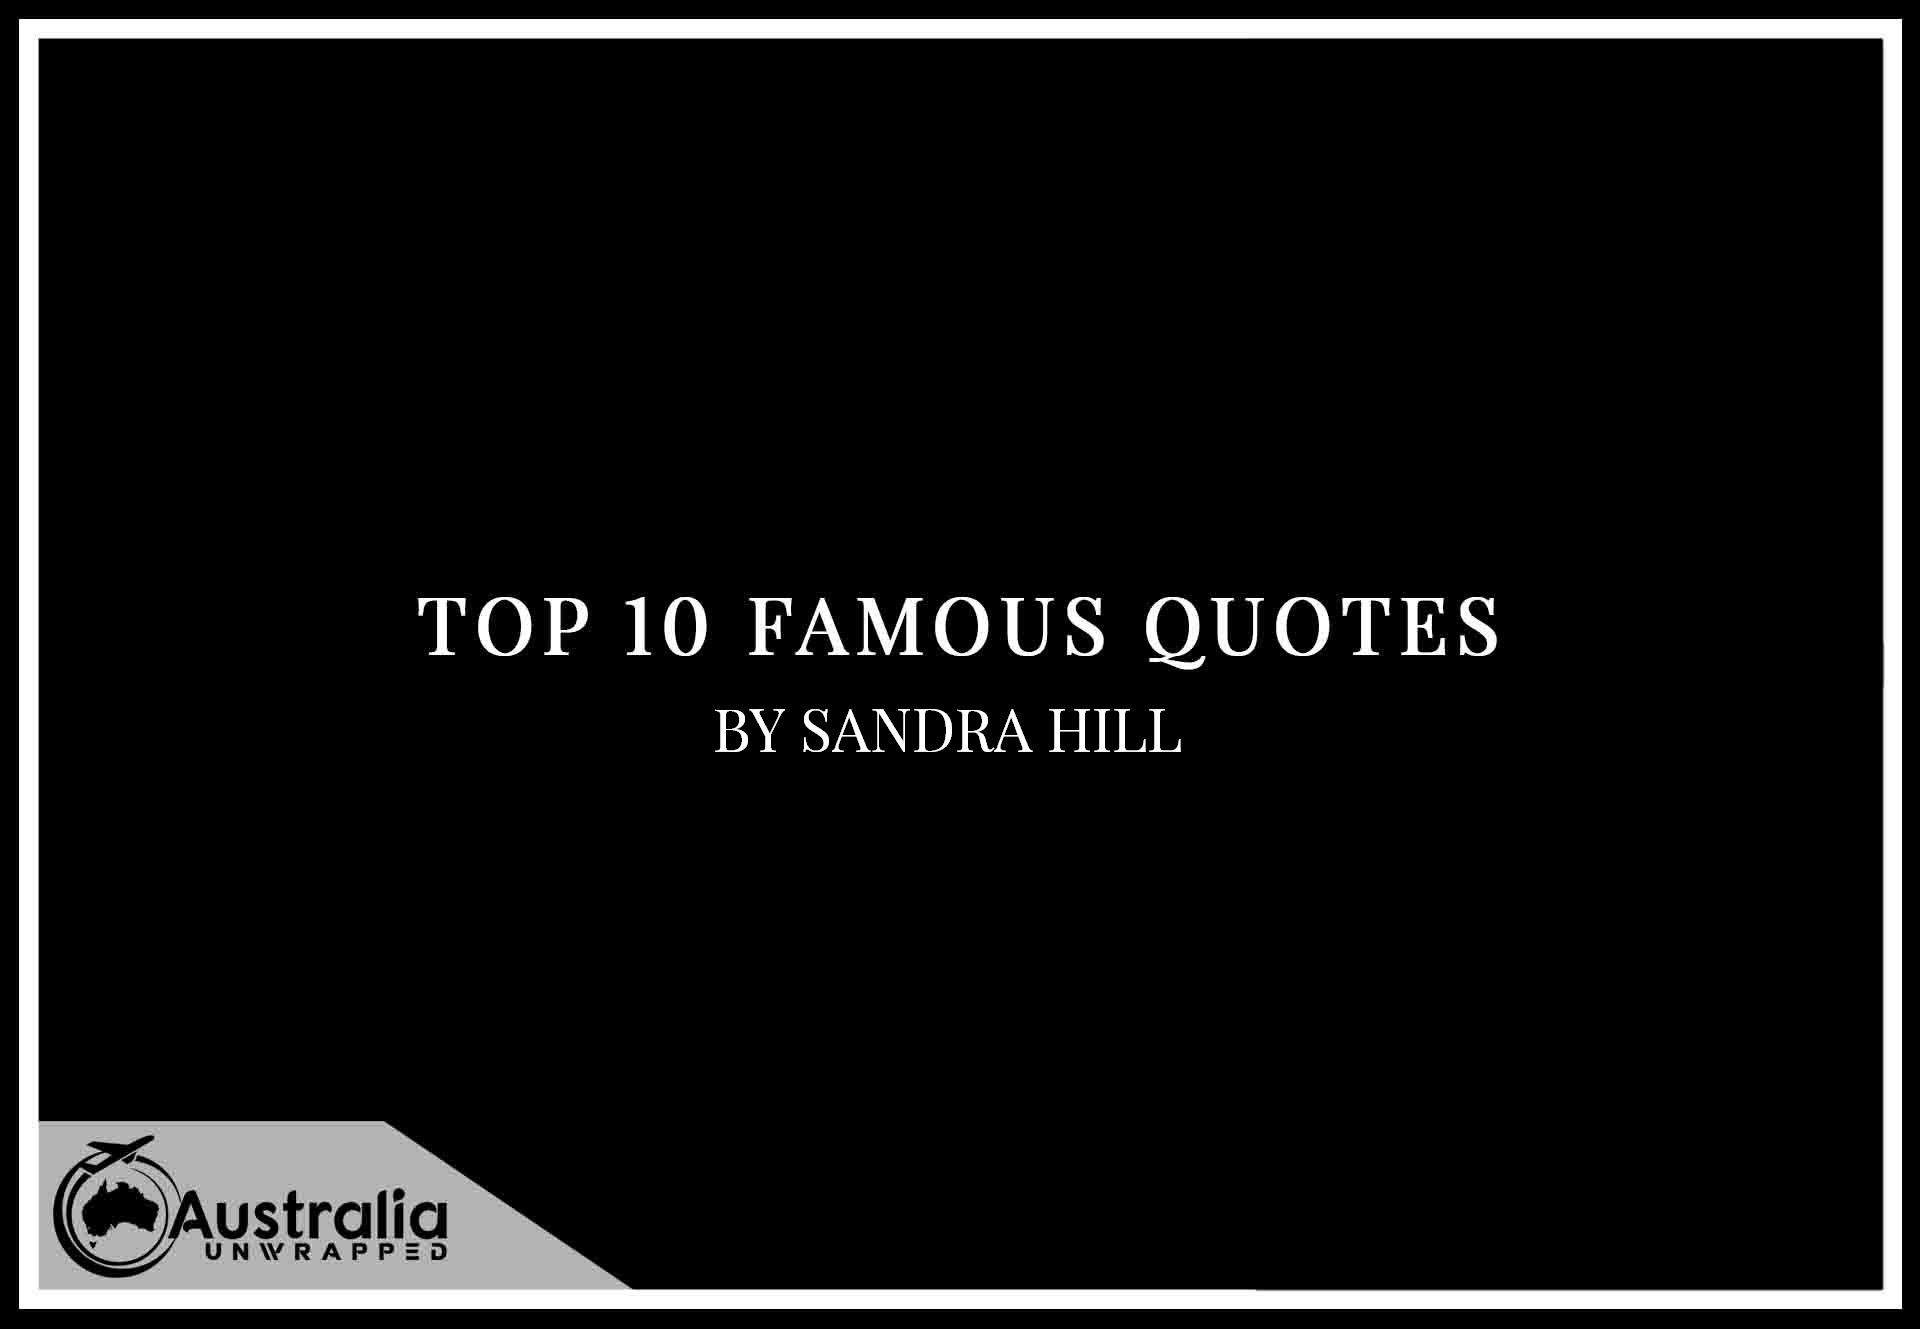 Top 10 Famous Quotes by Author Sandra Hill